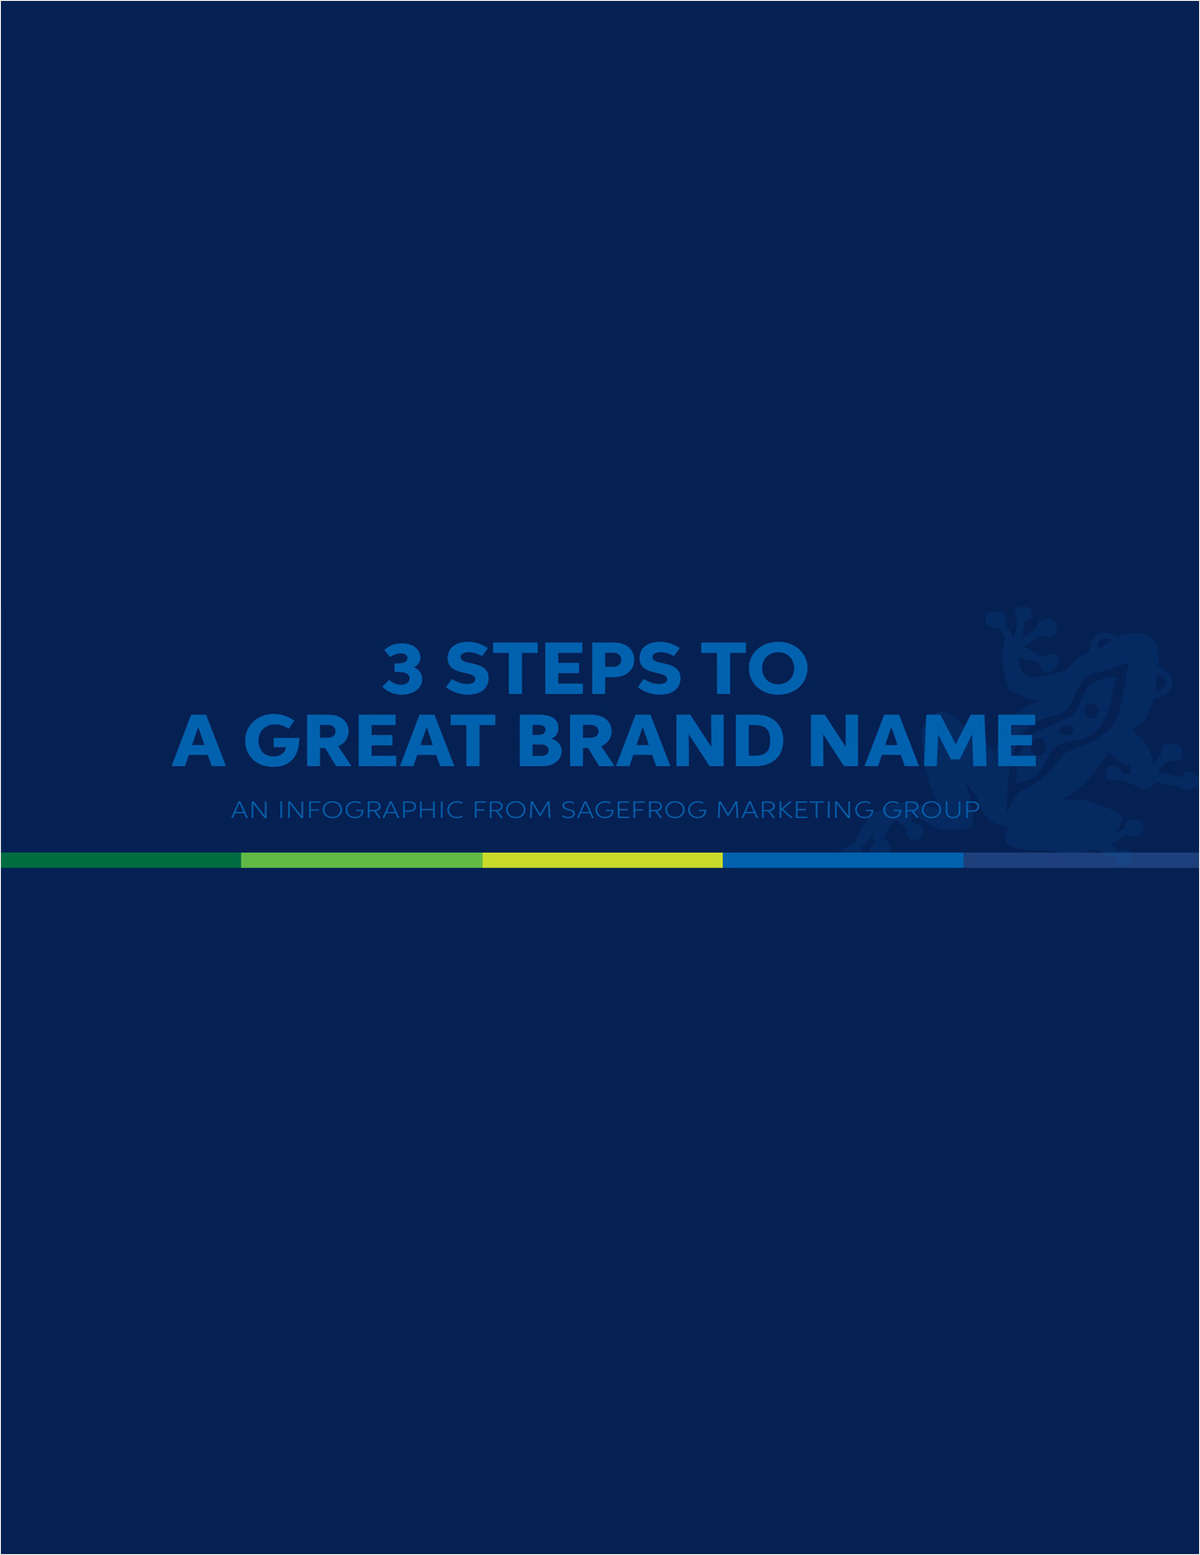 3 Steps to Creating a Great Brand Name